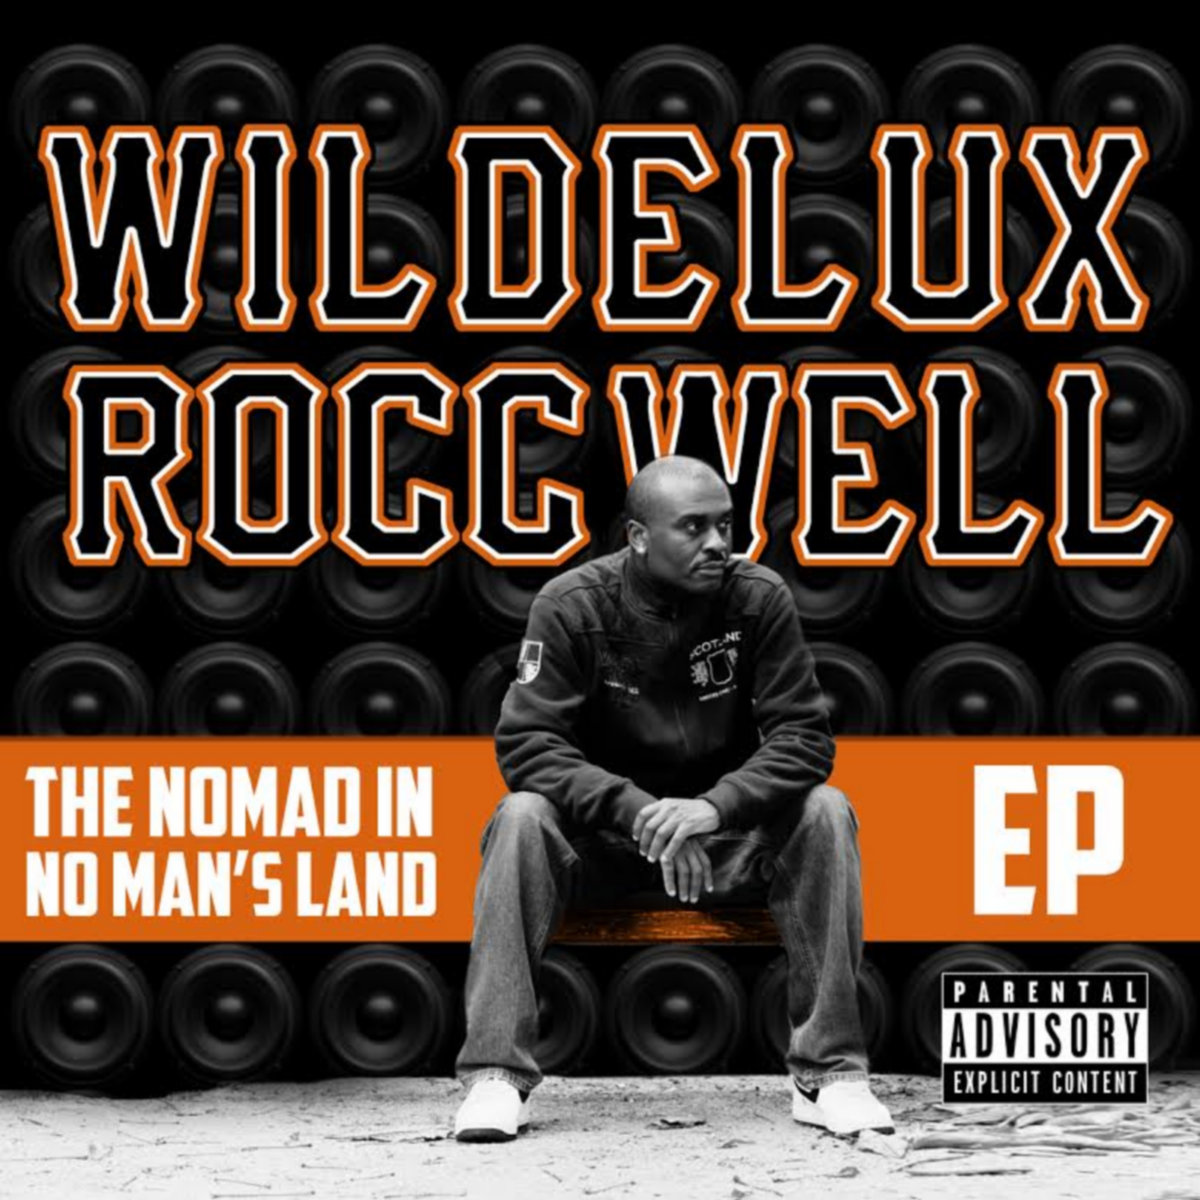 THE NOMAD IN NO MAN'S LAND - WILDELUX & ROCCWELL